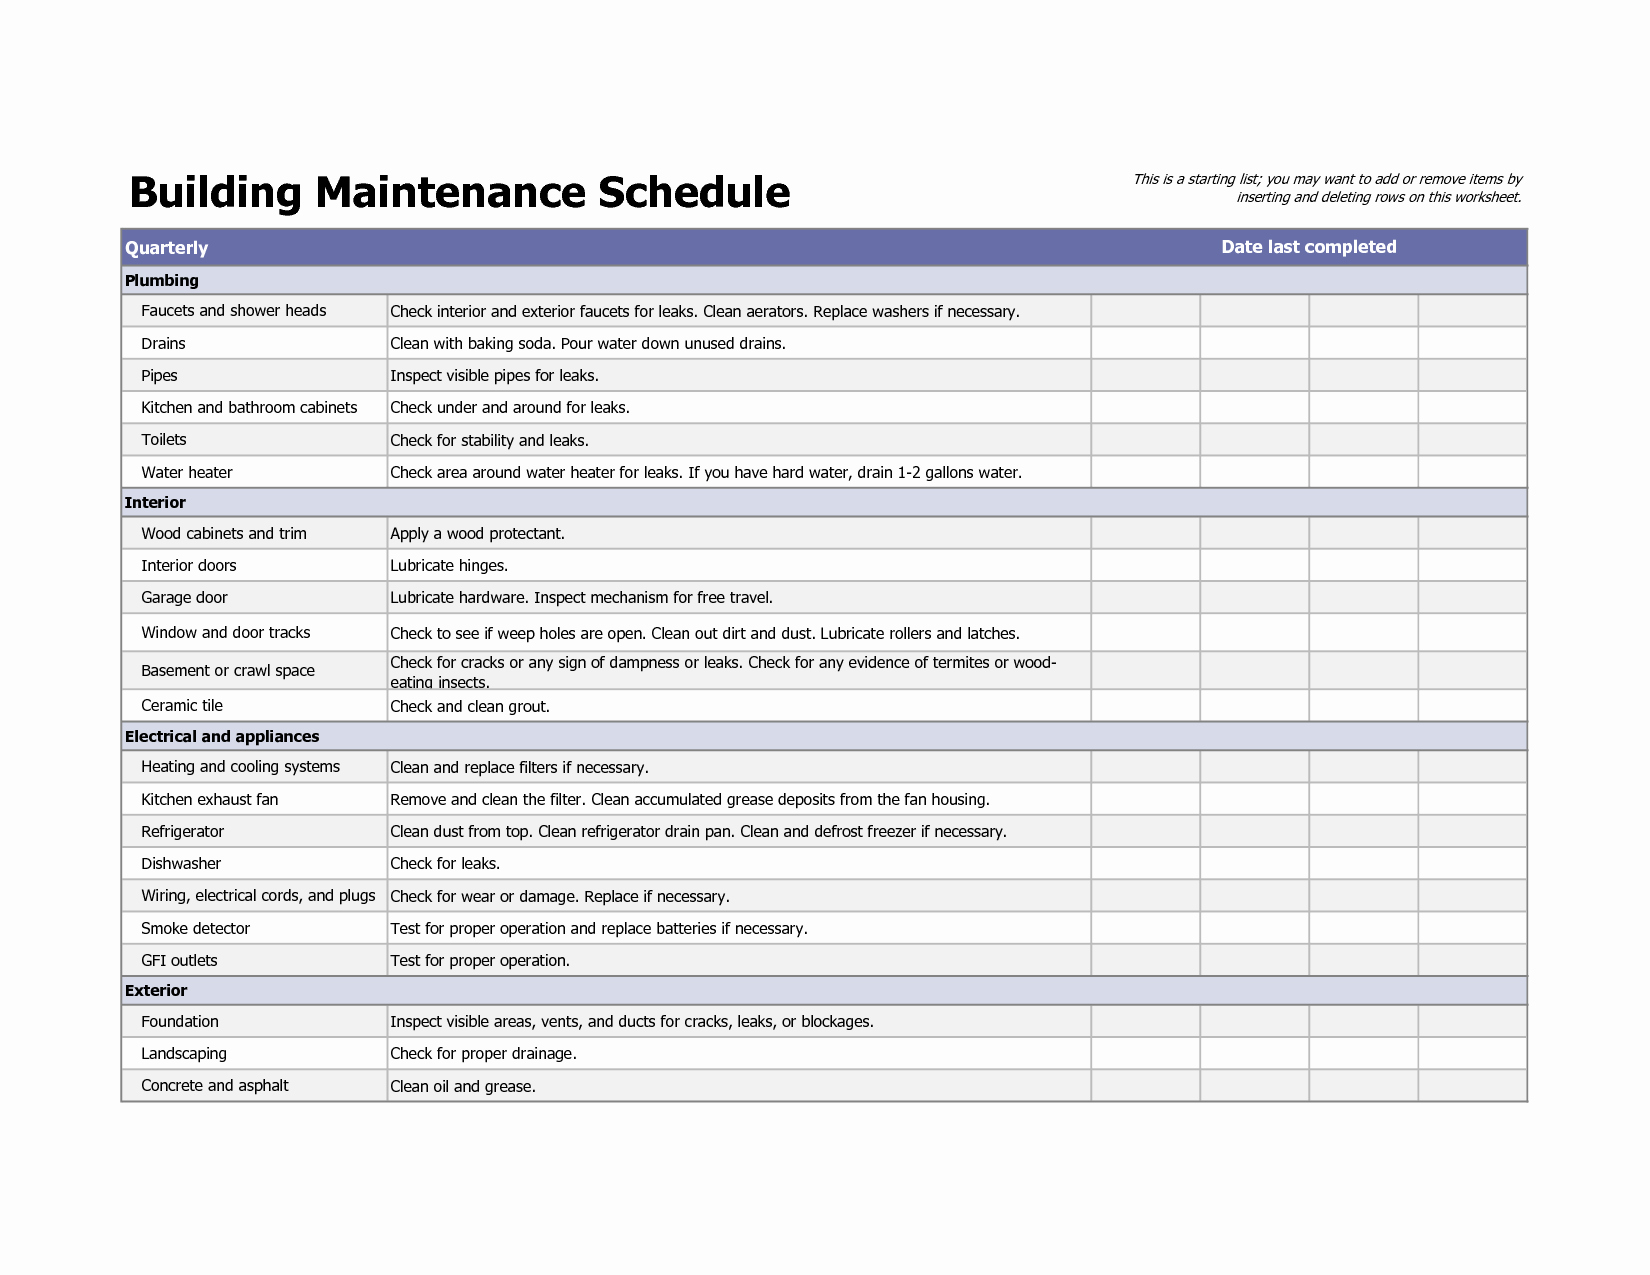 Preventative Maintenance Plan Template New Building Maintenance Schedule Excel Template